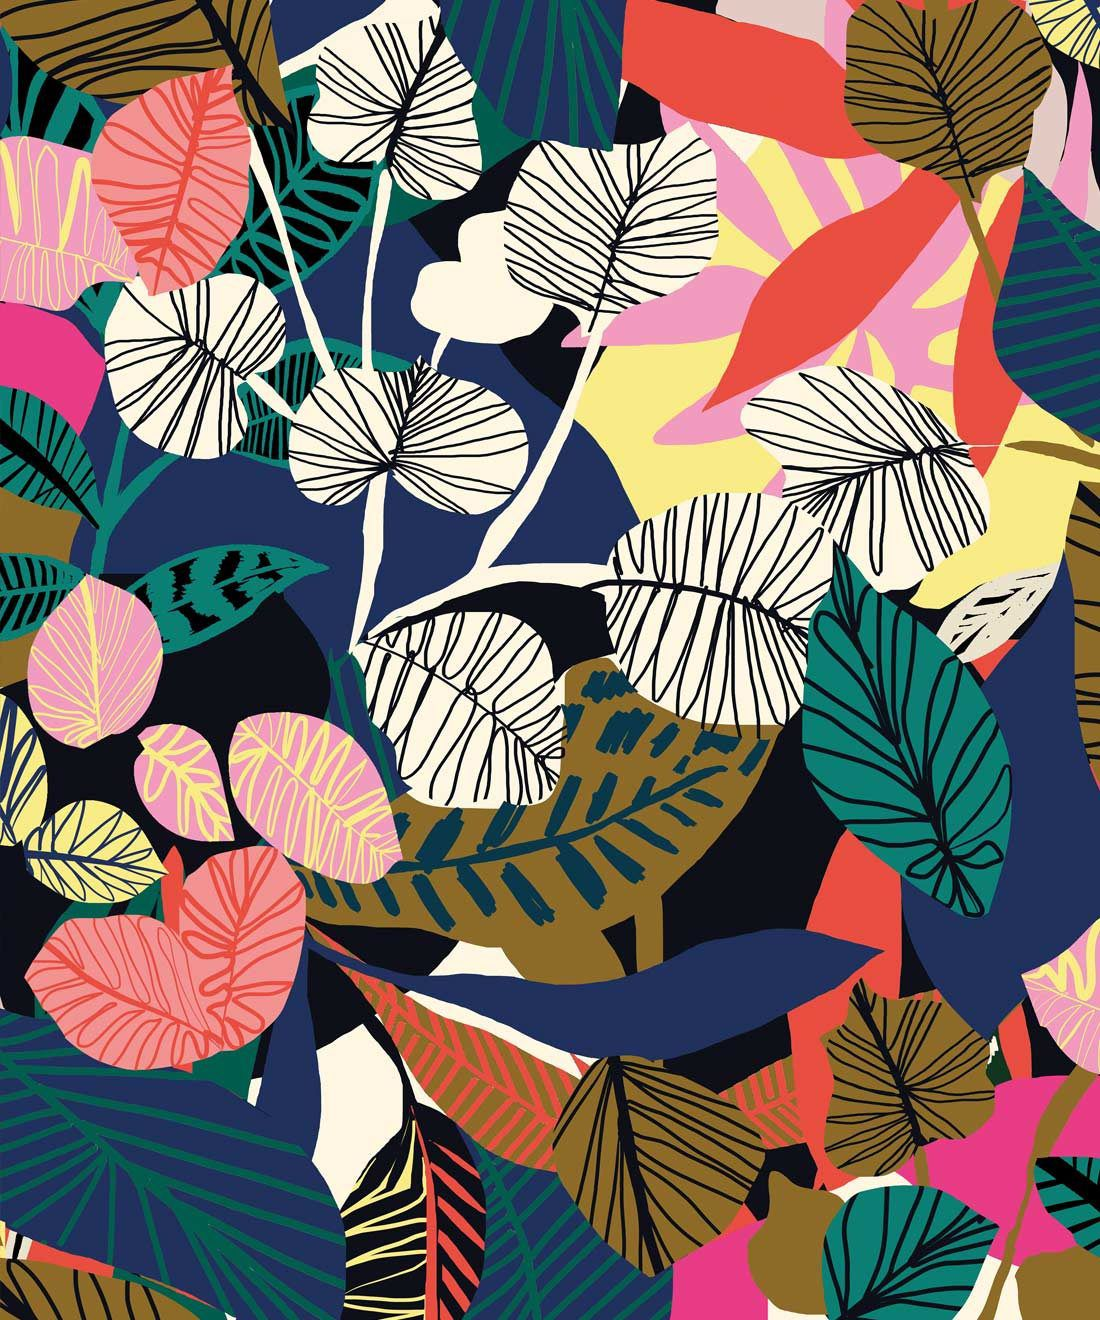 Overgrown Wallpaper, Colourful Banana Leaf Wallpaper by Kitty McCall, Milton & King, Europe